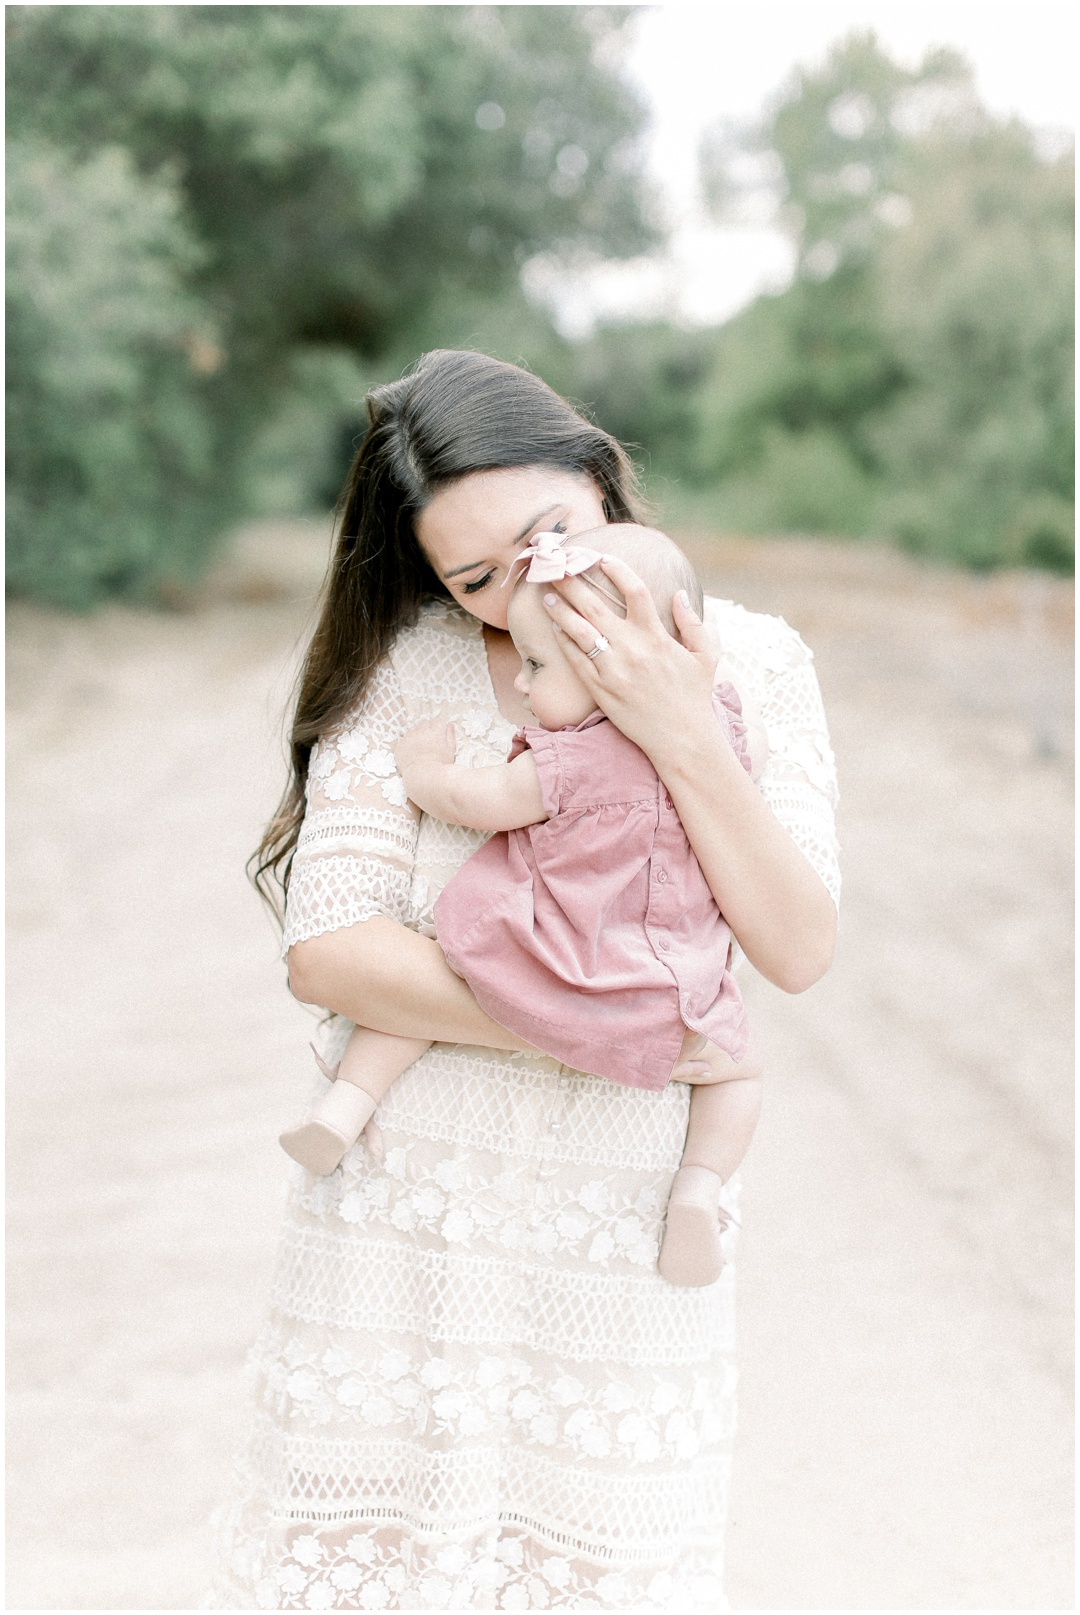 Newport_Beach_Newborn_Photographer_Newport_Beach_Maternity_Photographer_Orange_County_Family_Photographer_Cori_Kleckner_Photography_Huntington_Beach_Photographer__Nicole_Antoinette_Melotti_Family__2901.jpg